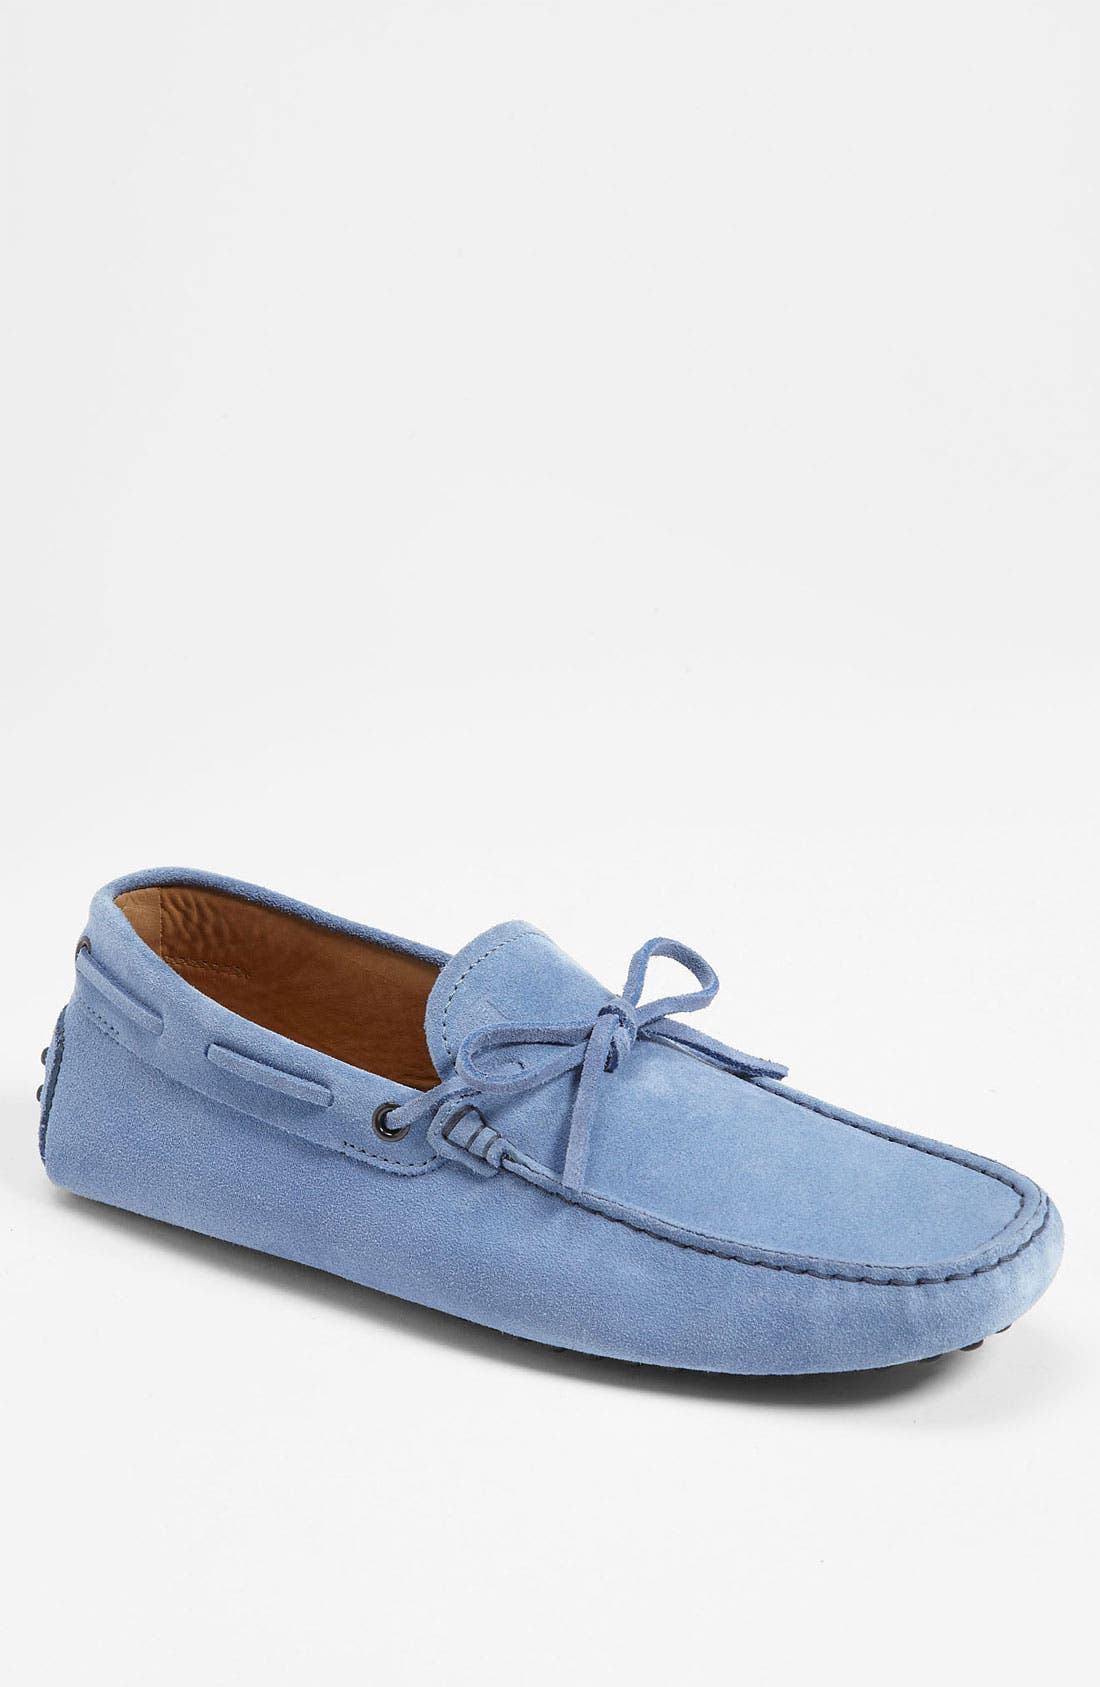 Gommini Tie Front Driving Moccasin,                             Main thumbnail 9, color,